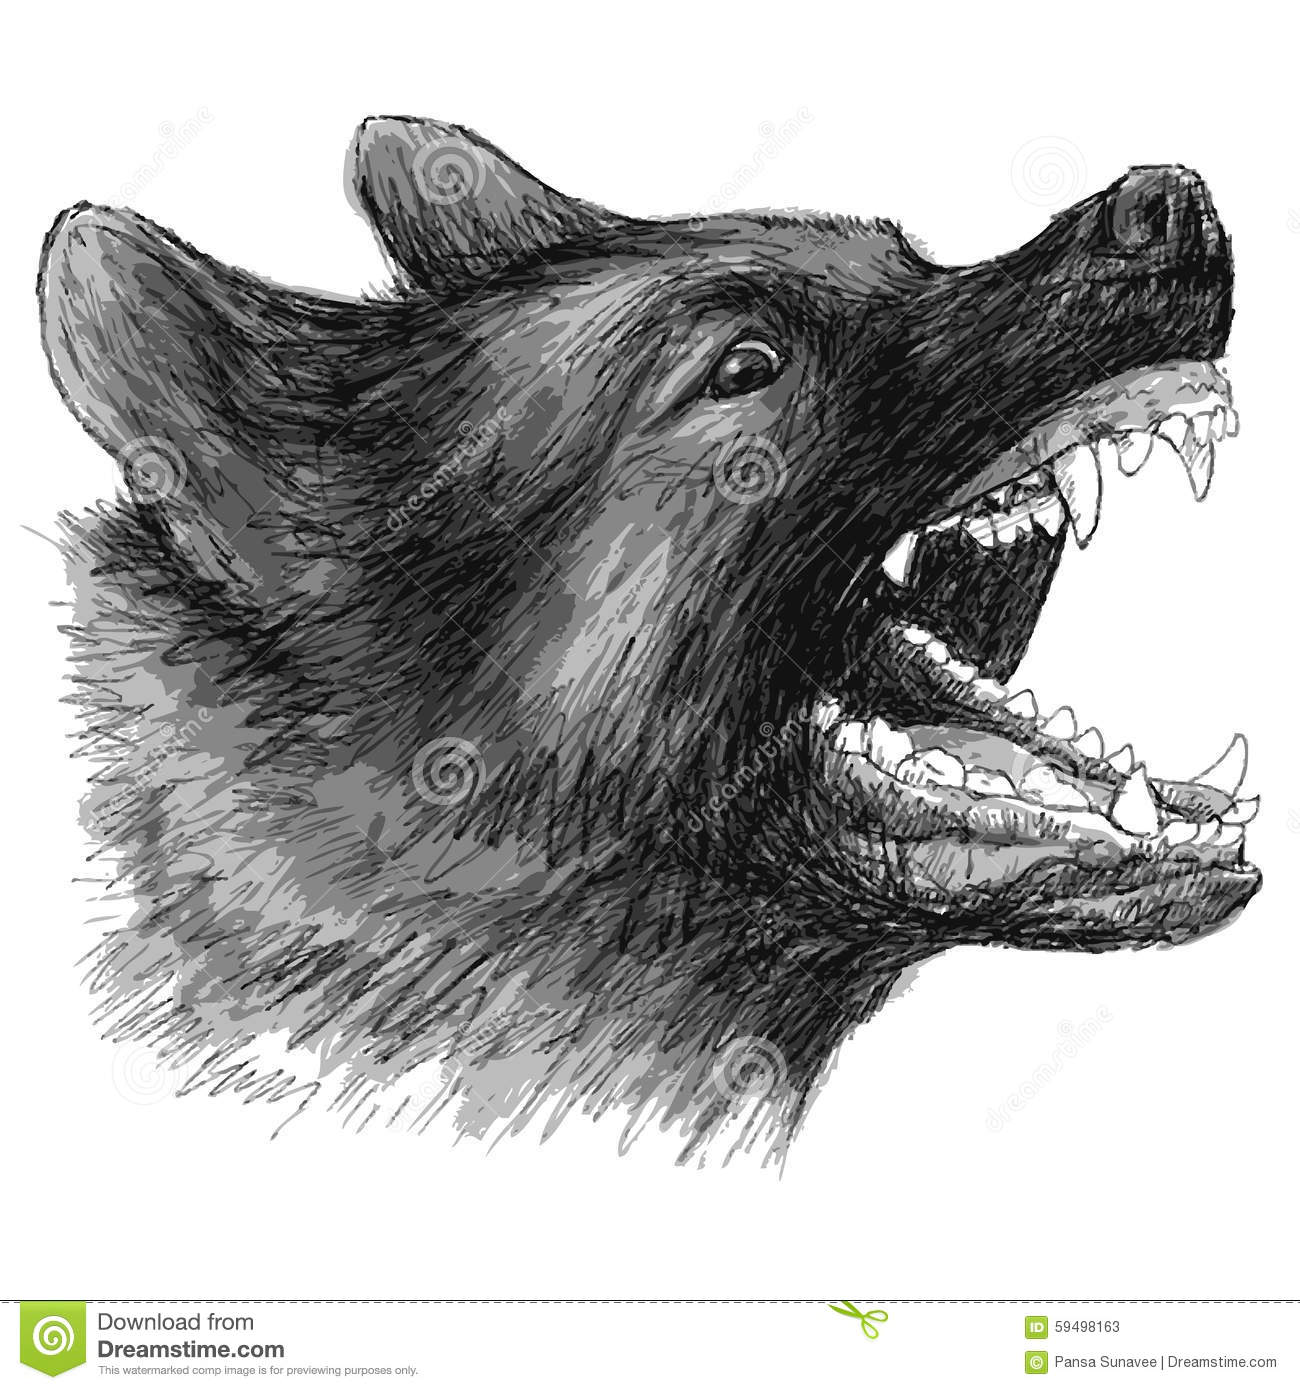 Orca Hound 165429843 furthermore Paw Print Tattoo likewise 8914132 moreover Call Of Duty Modern Warfare 3 Posed Characters Art besides Setting Dog Fail. on german shepherd drawings